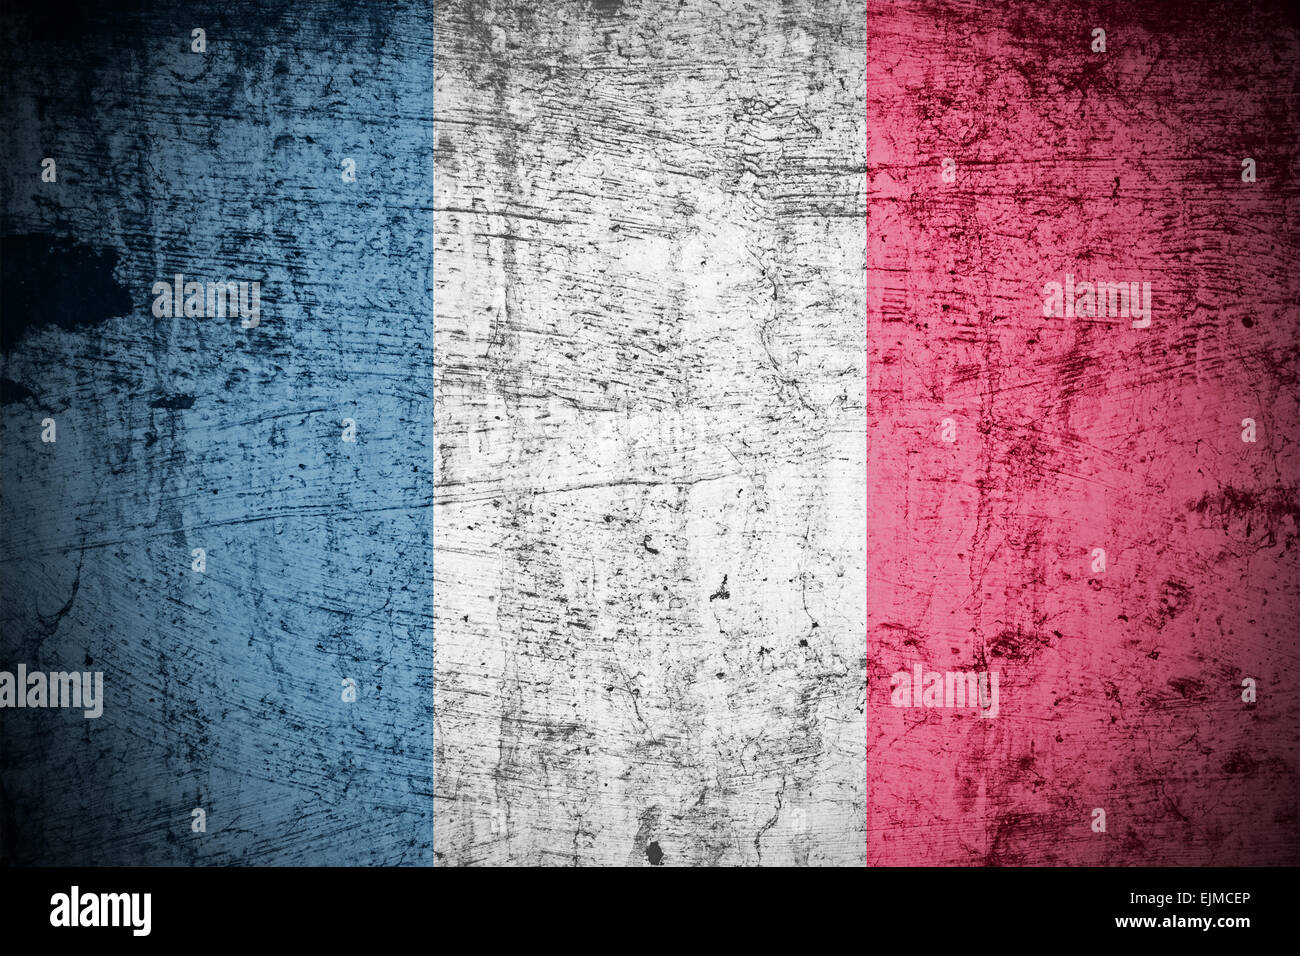 A Colourful Grunge style French Flag Illustration - Stock Image